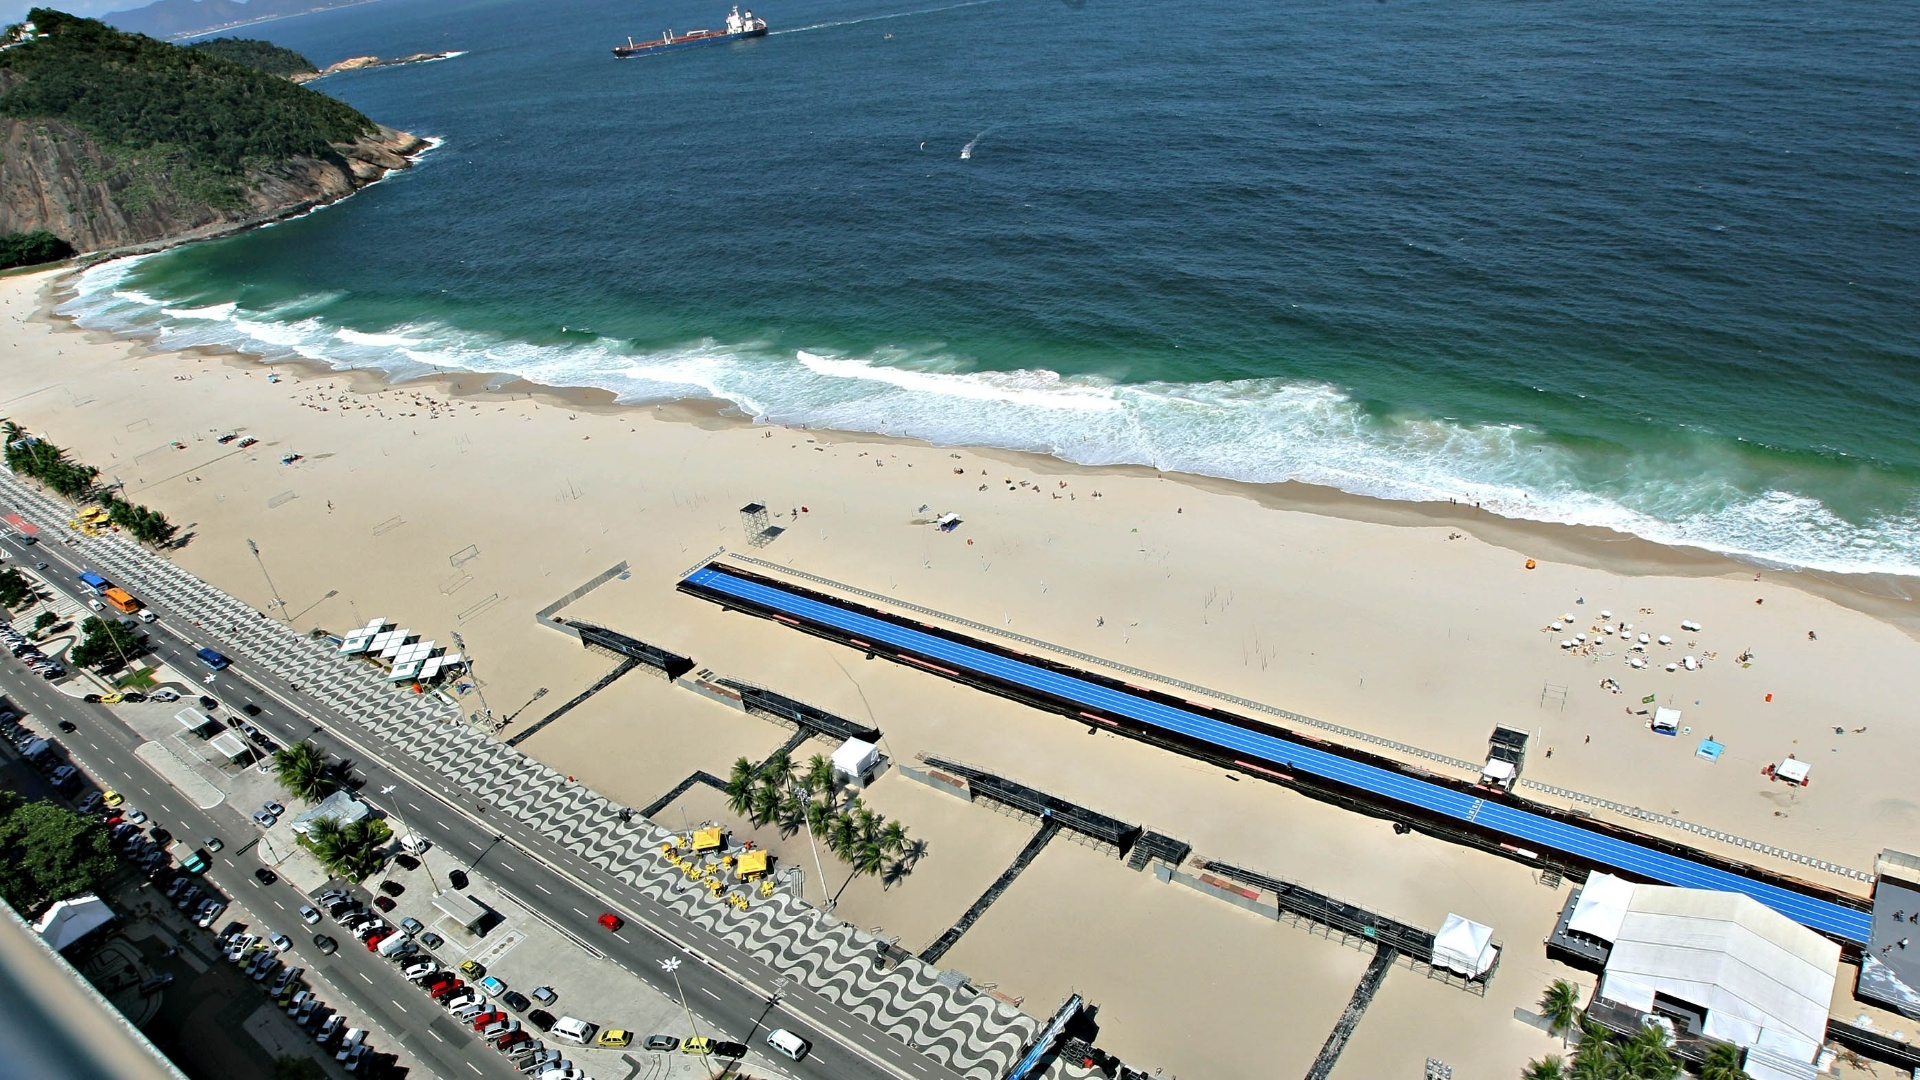 28.mar.2013 - Imagem panormica da praia de Copacabana mostra a pista de 150 m em que Usain Bolt competir no prximo domingo